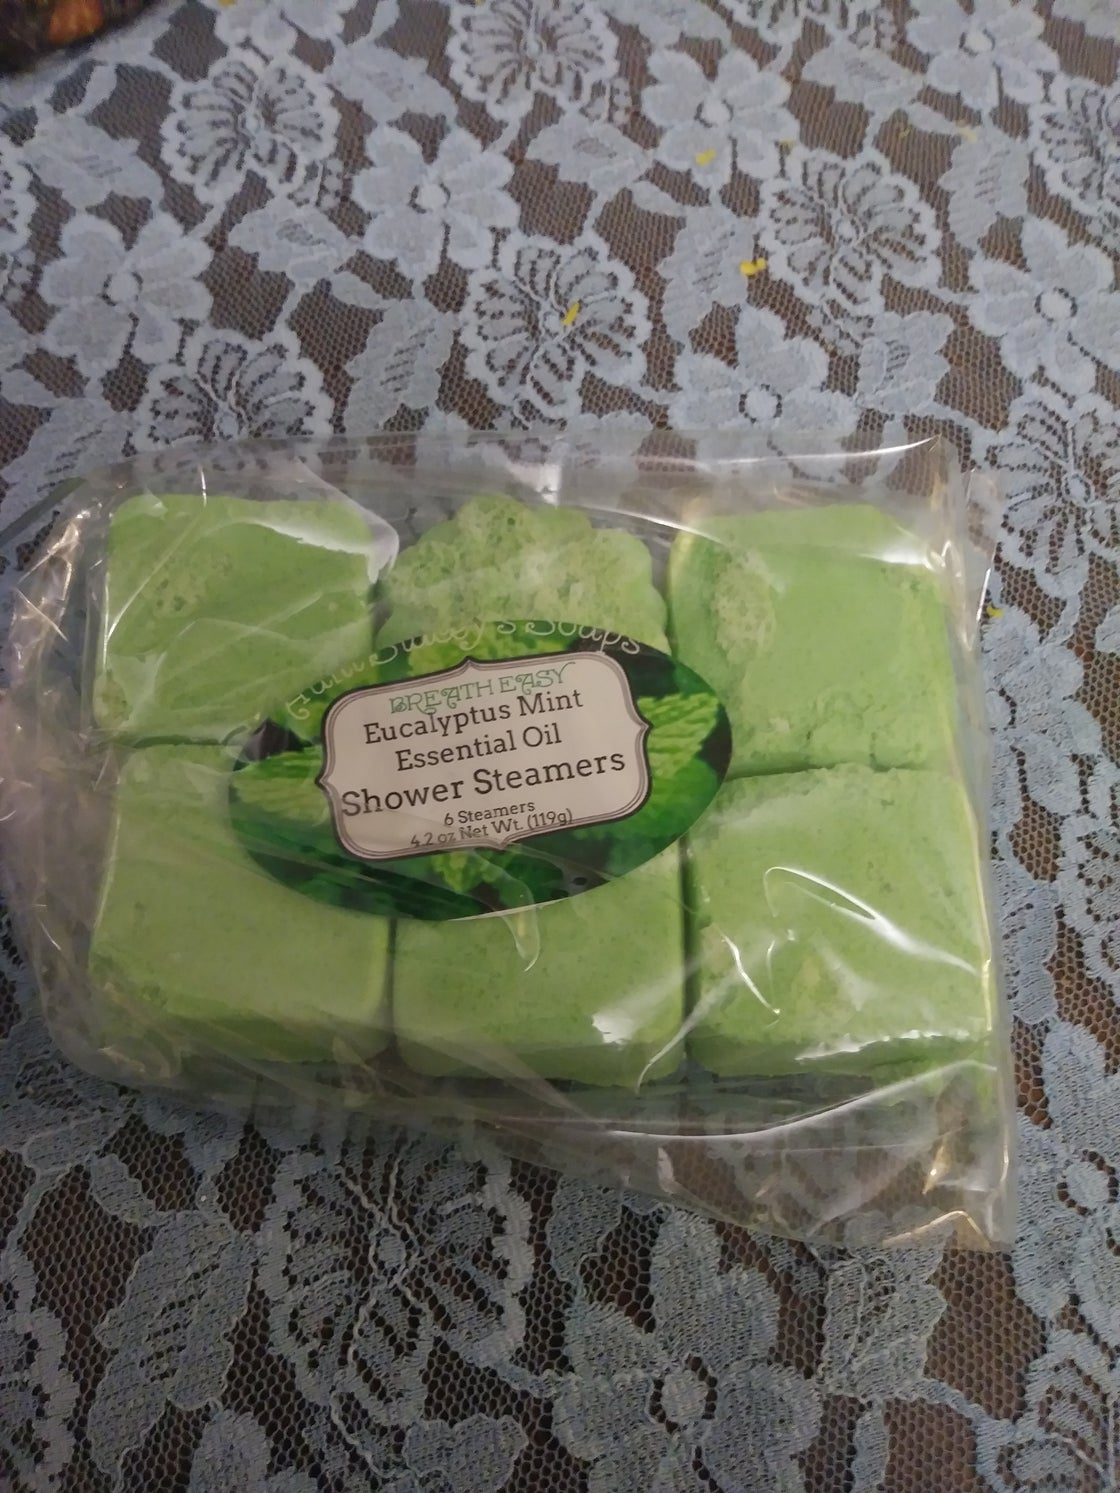 Image of Eucalyptus Mint Essential Oil Shower Steamers